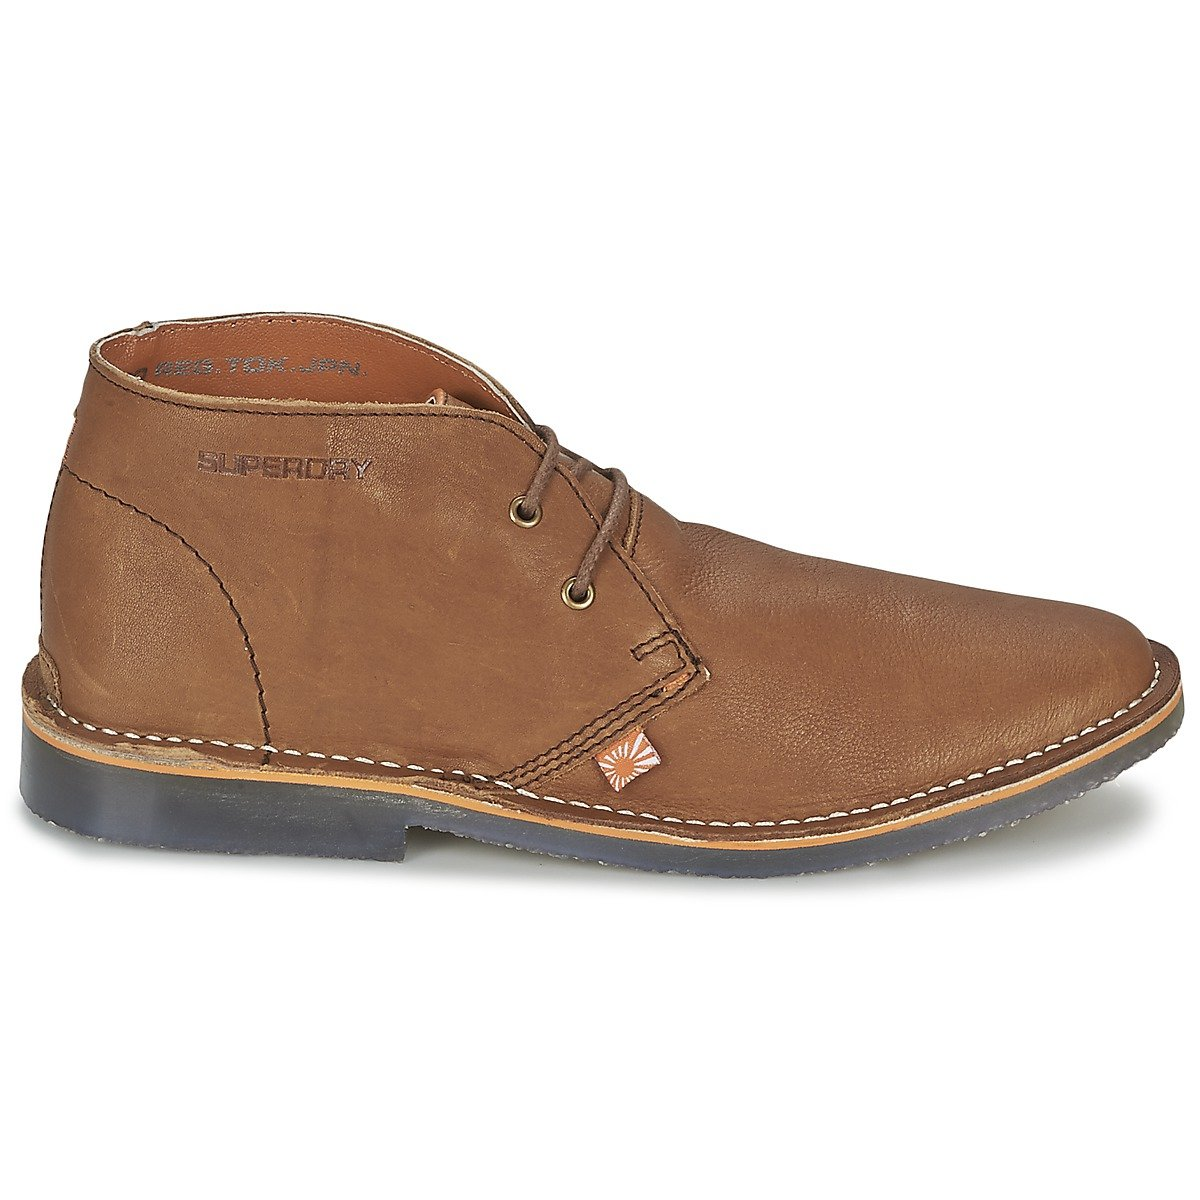 SUPERDRY mens KALAHARI LEATHER BOOT Brown Leather Ankle